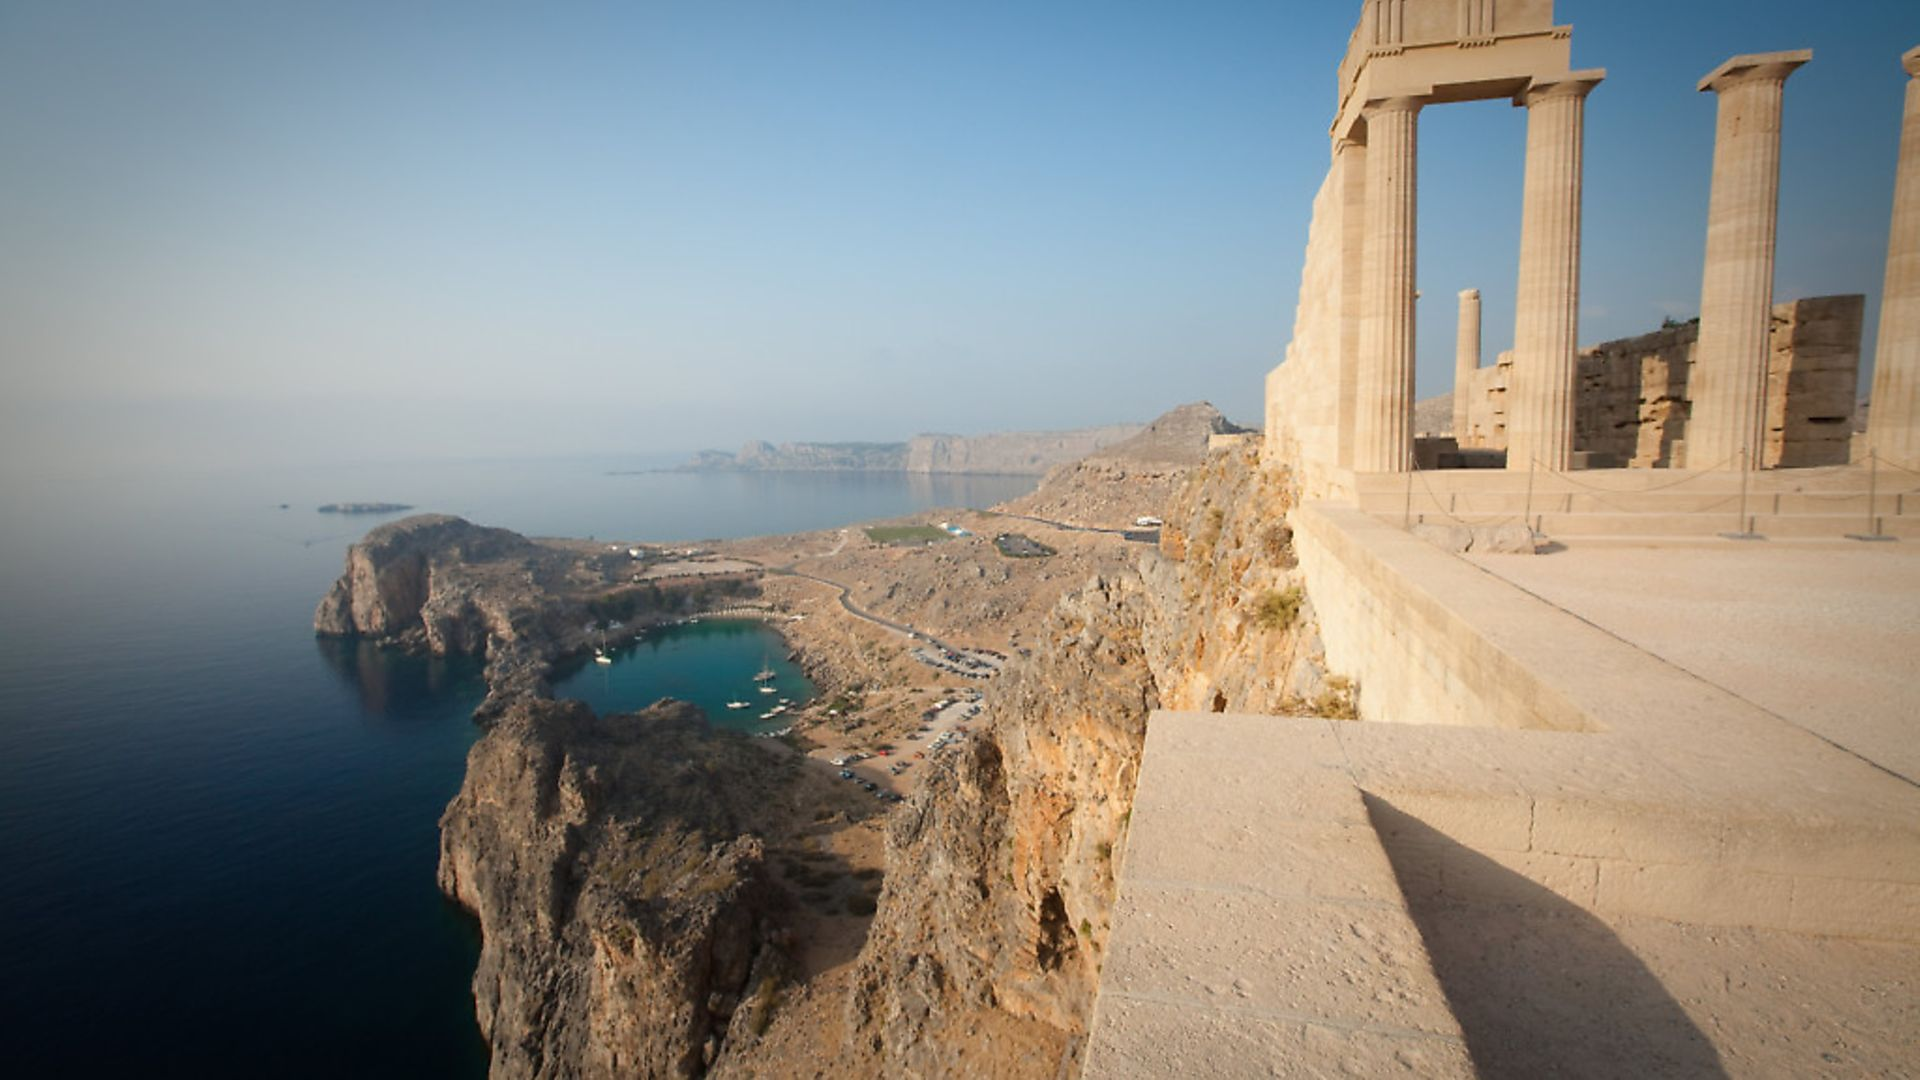 he English word apostrophe comes from a Greek term meaning turning away. Acropolis of Lindos, overlooking St. Paul's Bay, Lindos, Rhodes, Greece. - Credit: Getty Images